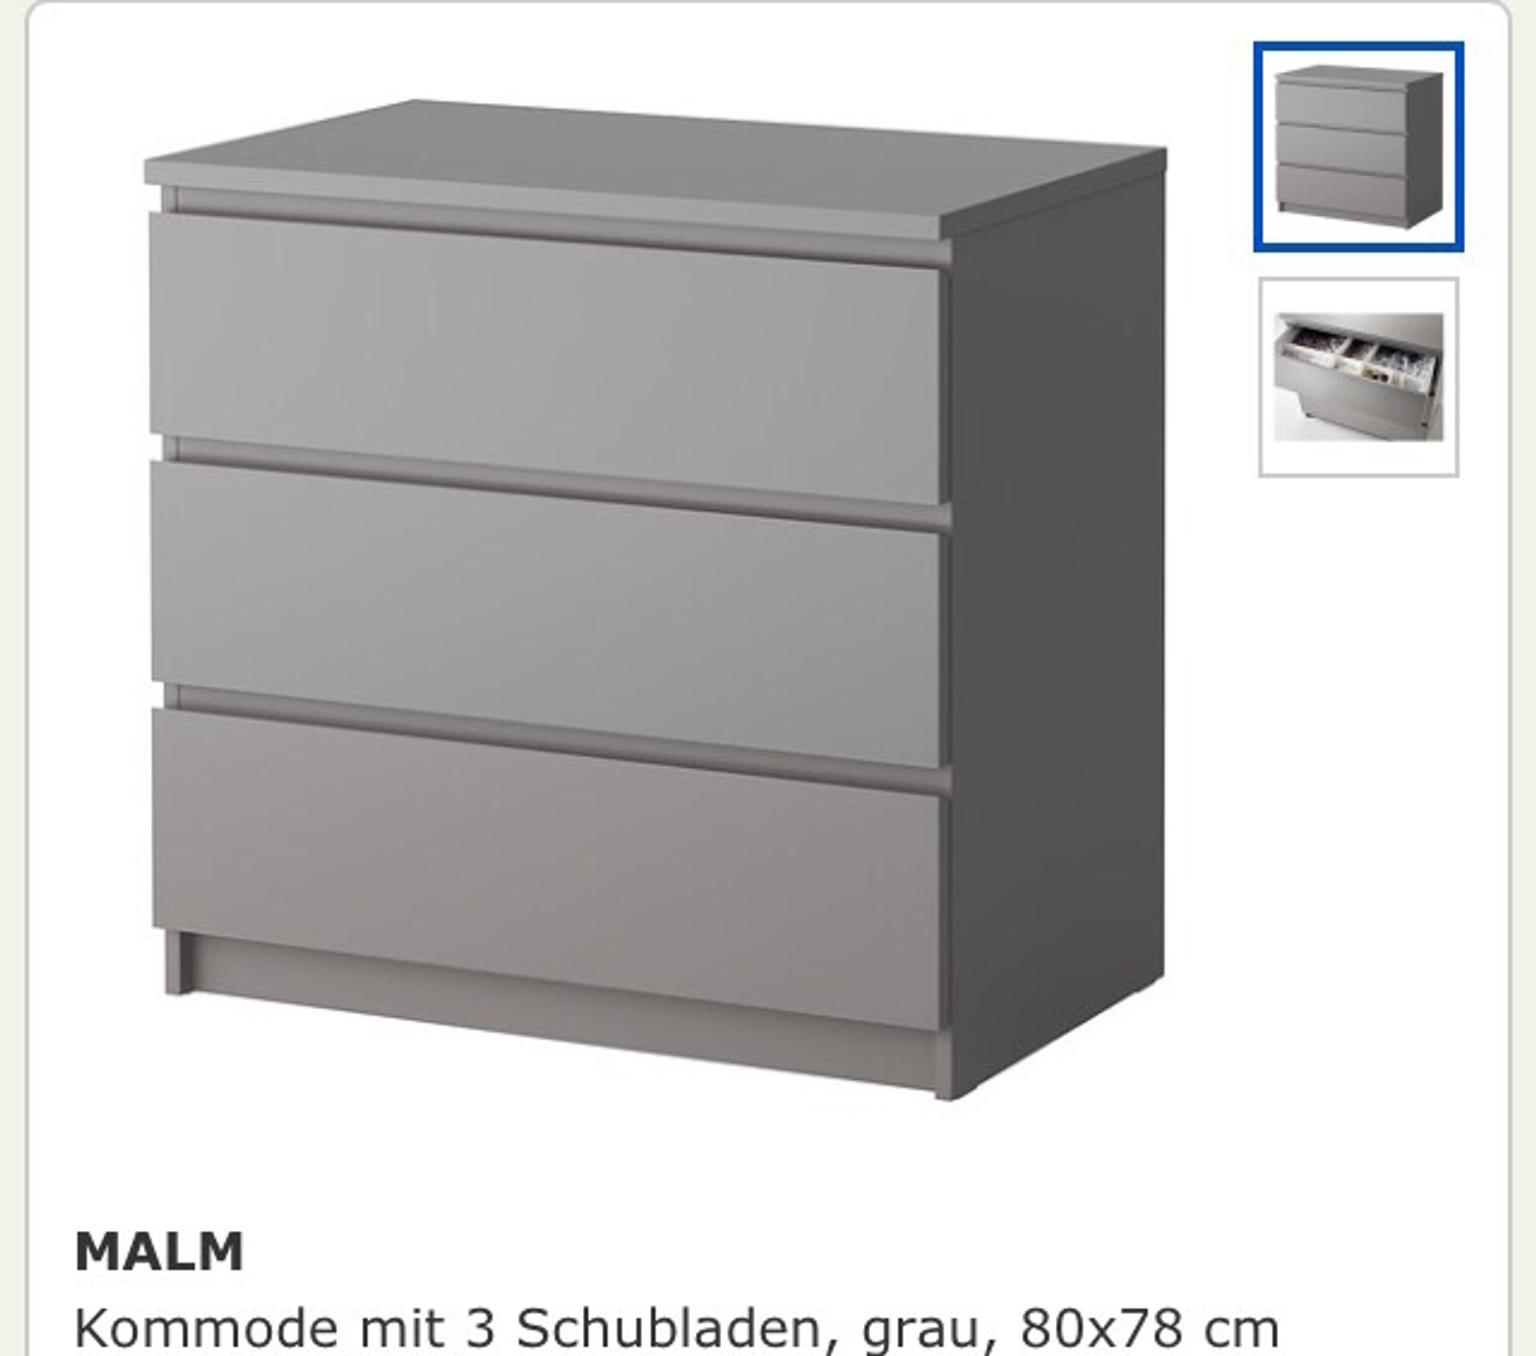 Ikea Malm Kommode Grau In 45128 Essen For 45 Shpock